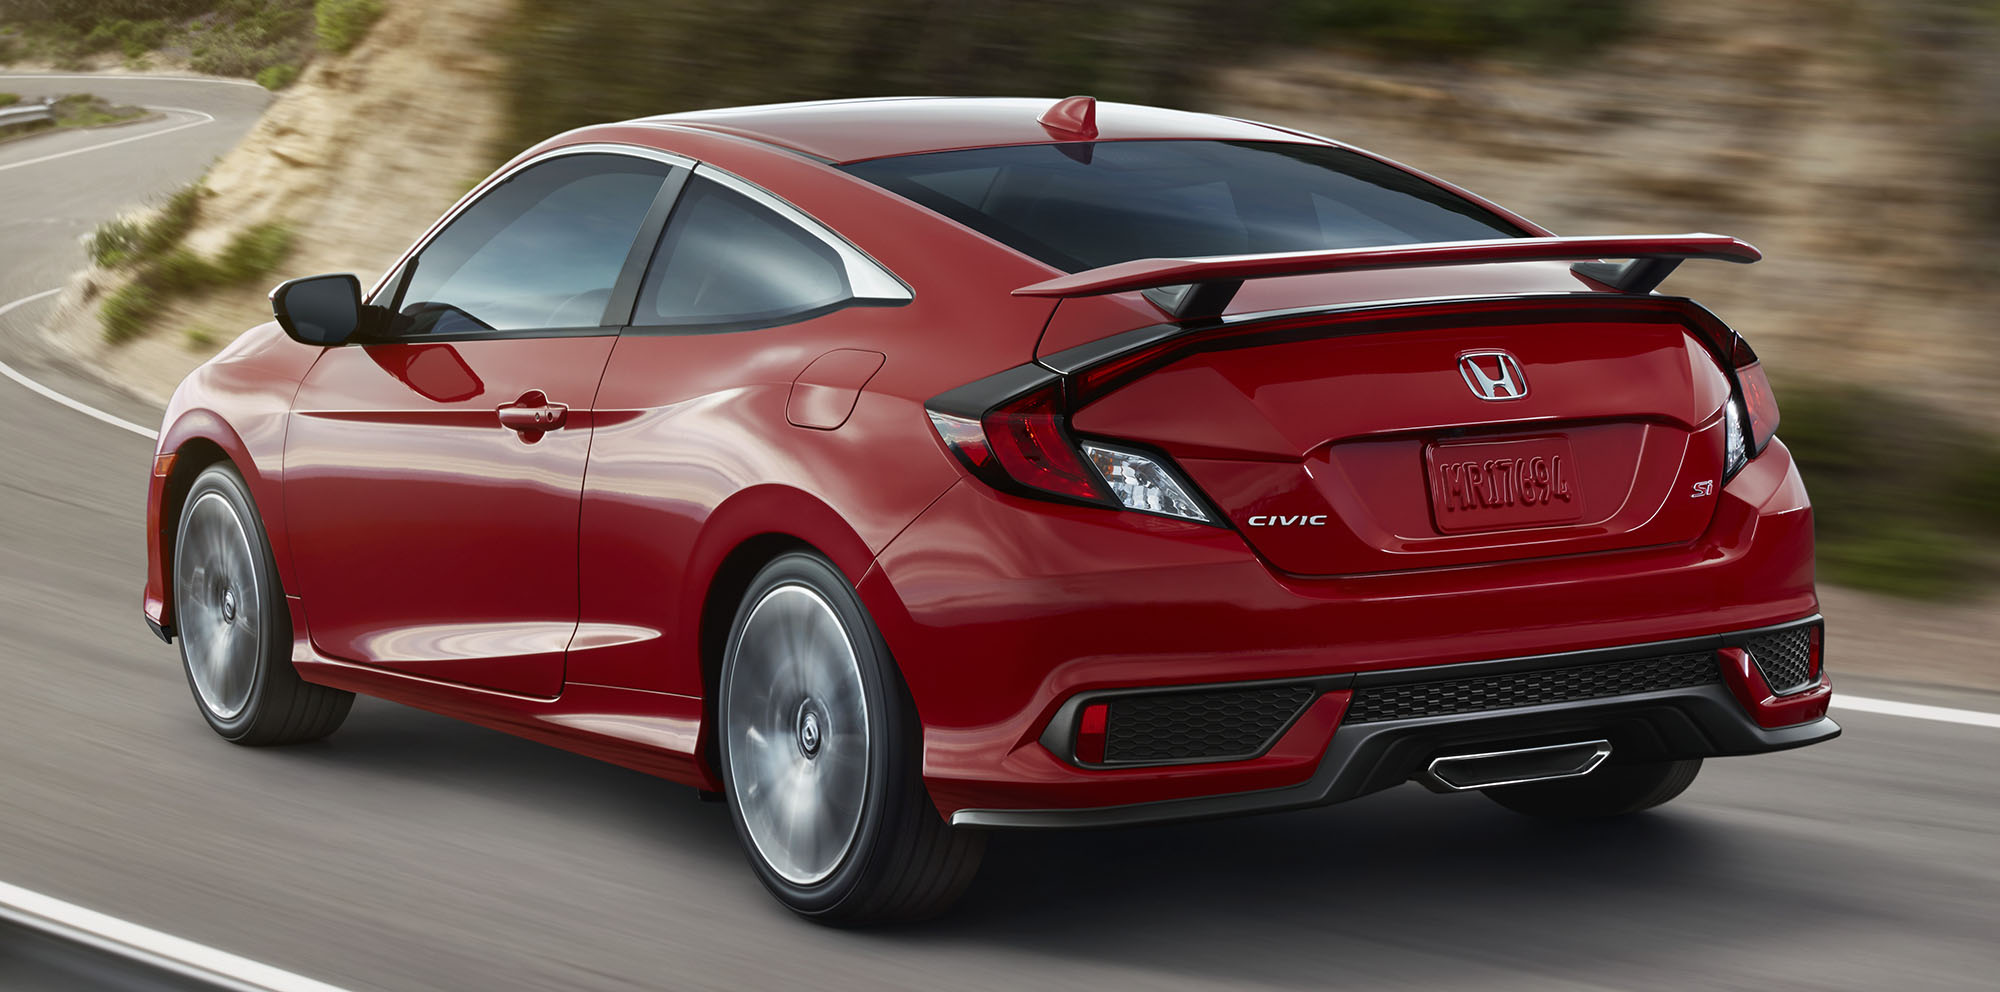 honda civic si unveiled in the usa bridges gap to type r photos 1 of 4. Black Bedroom Furniture Sets. Home Design Ideas